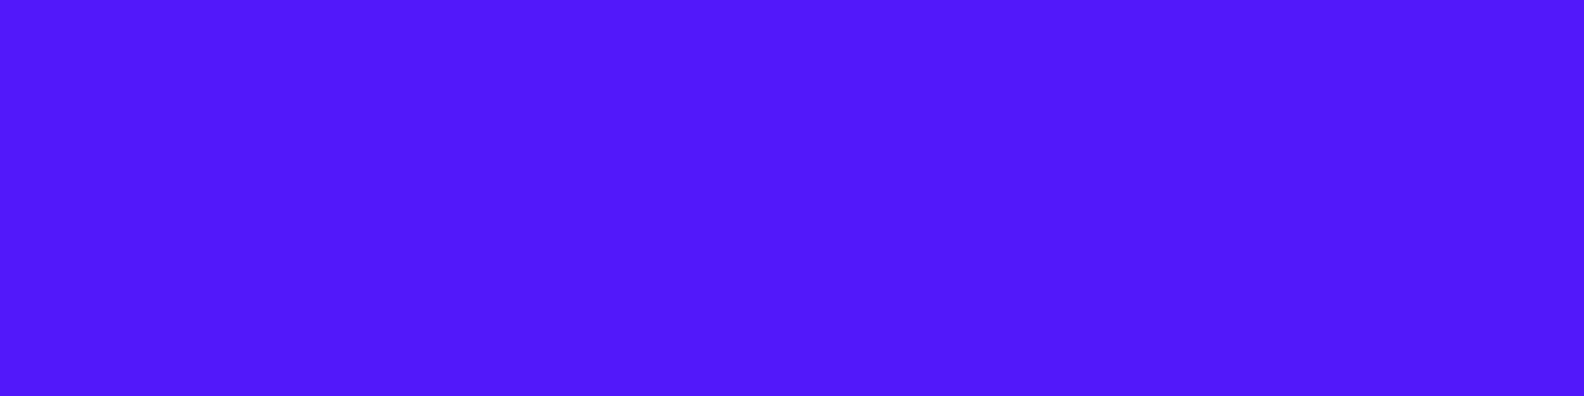 1584x396 Han Purple Solid Color Background